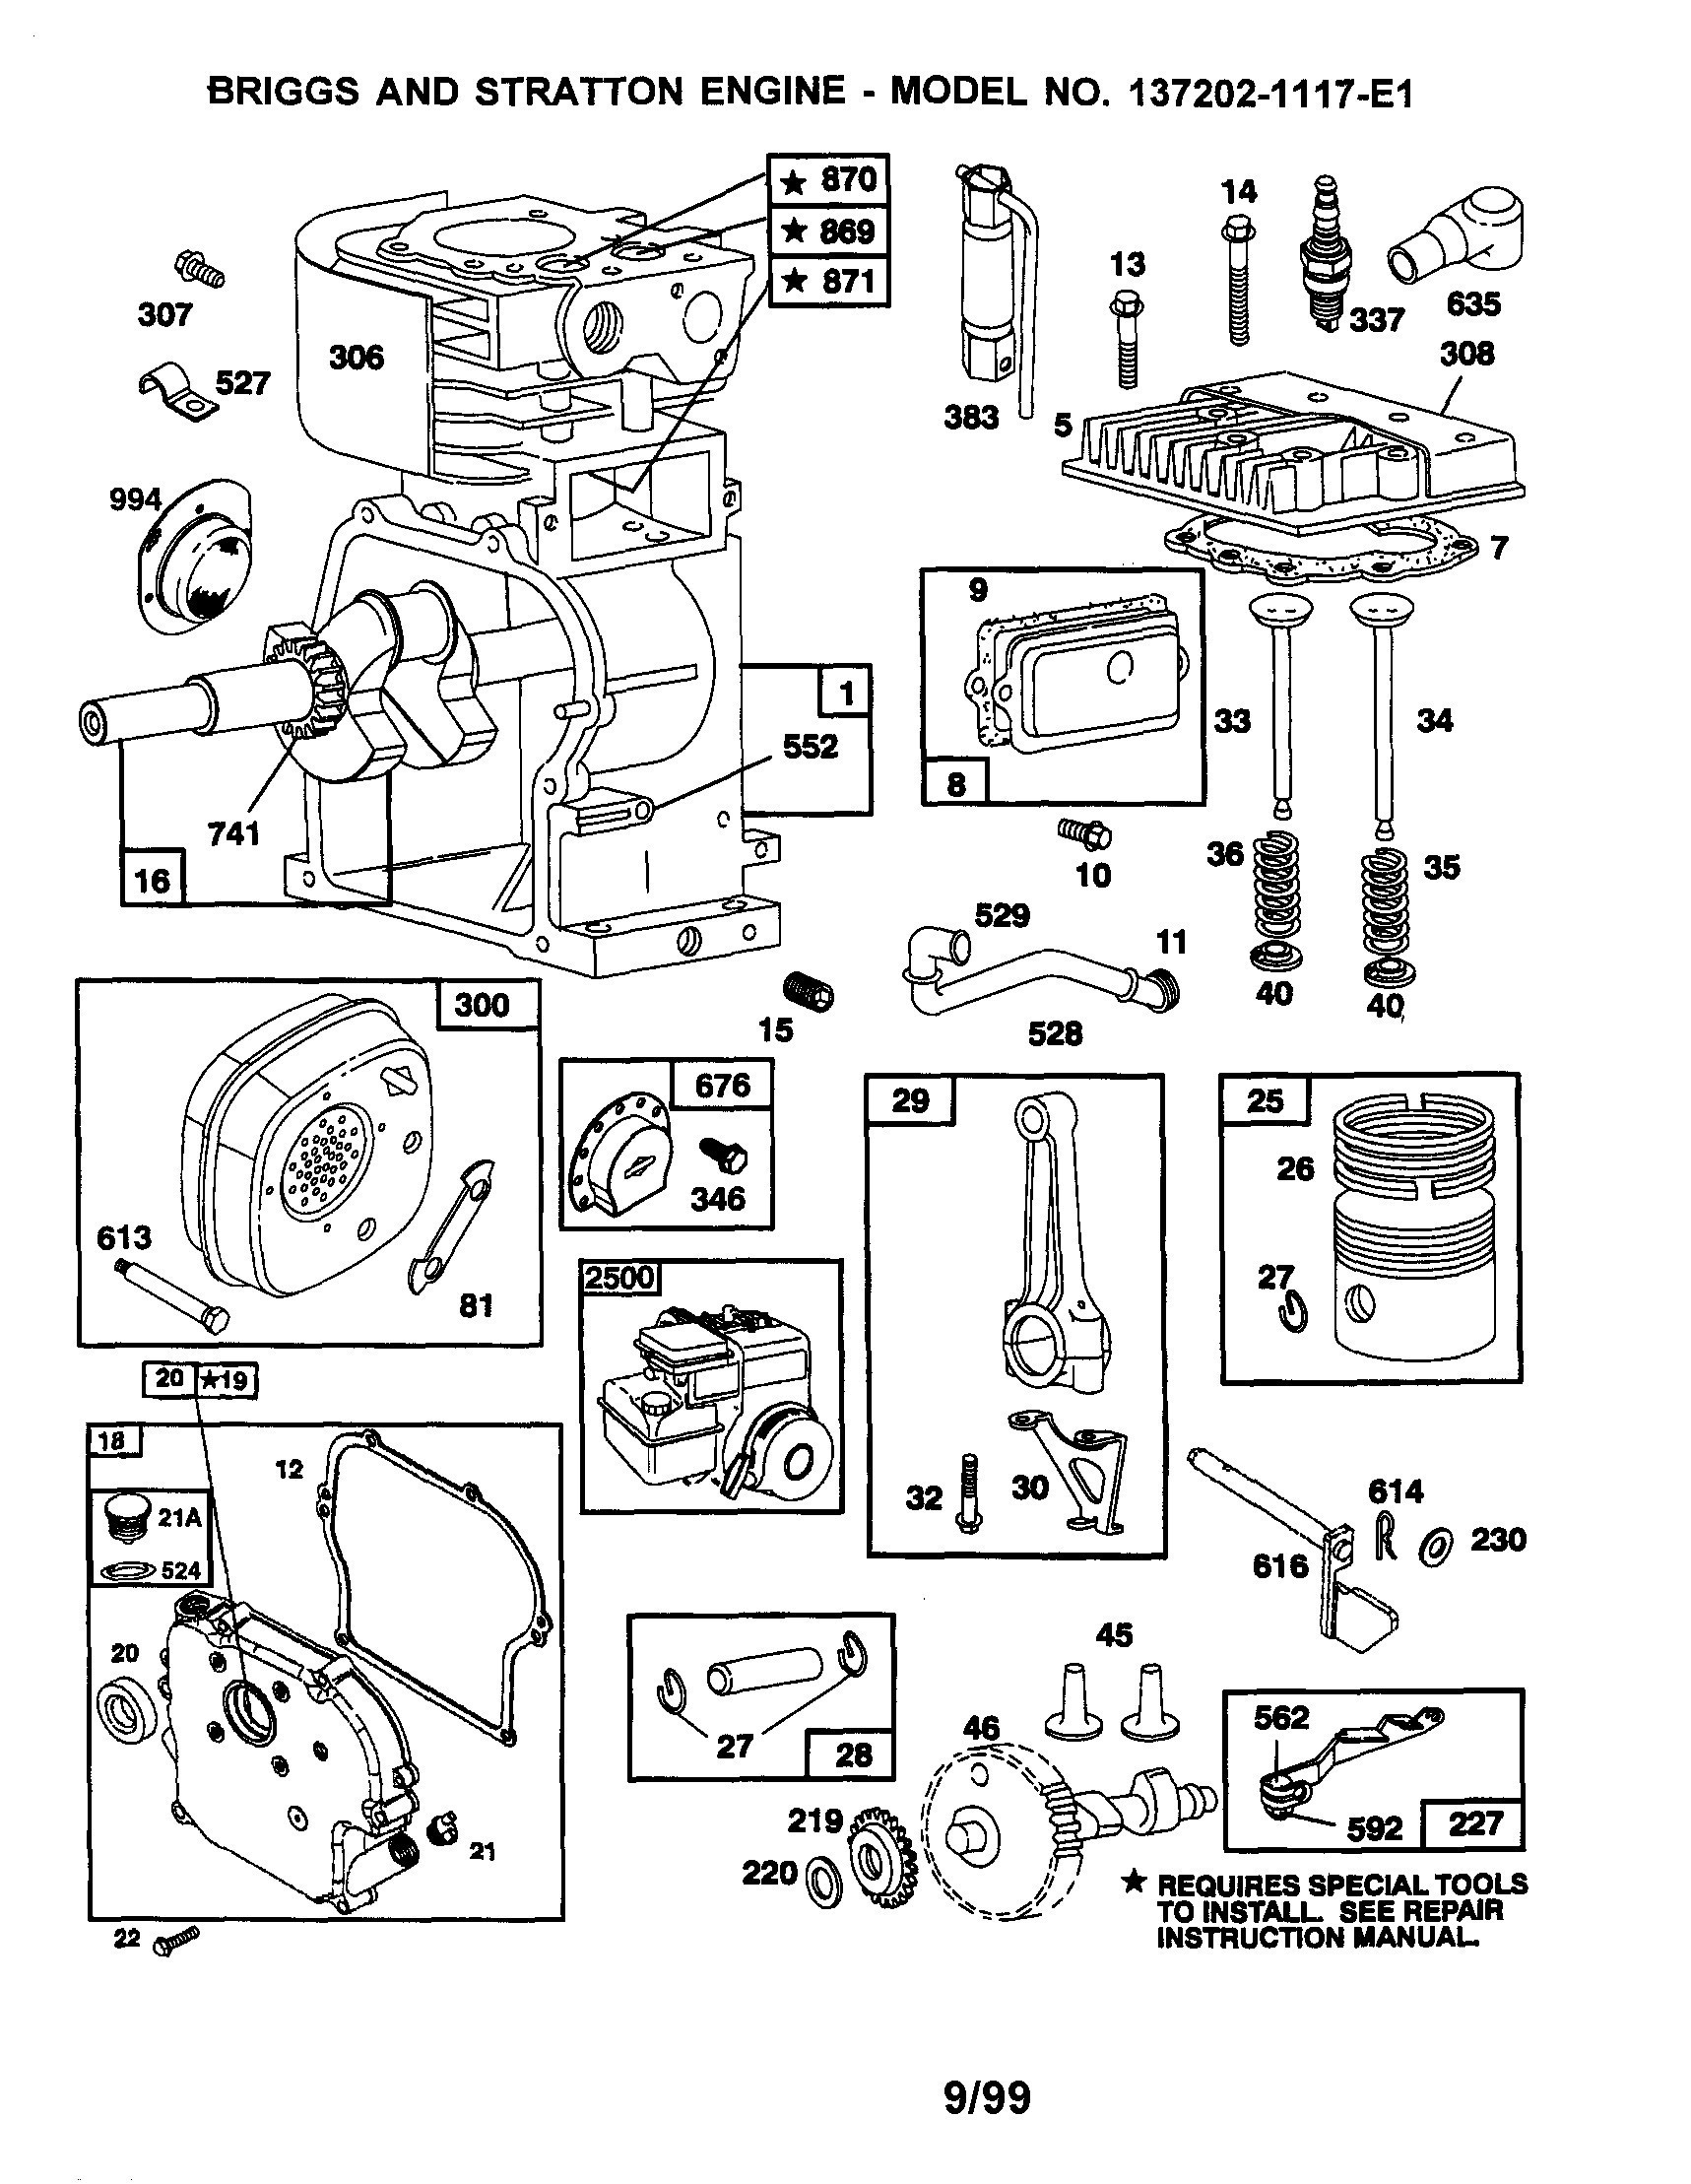 Briggs and Stratton Lawn Mower Engine Diagram Briggs Stratton Engine Parts and Diagrams 2 Of Briggs and Stratton Lawn Mower Engine Diagram